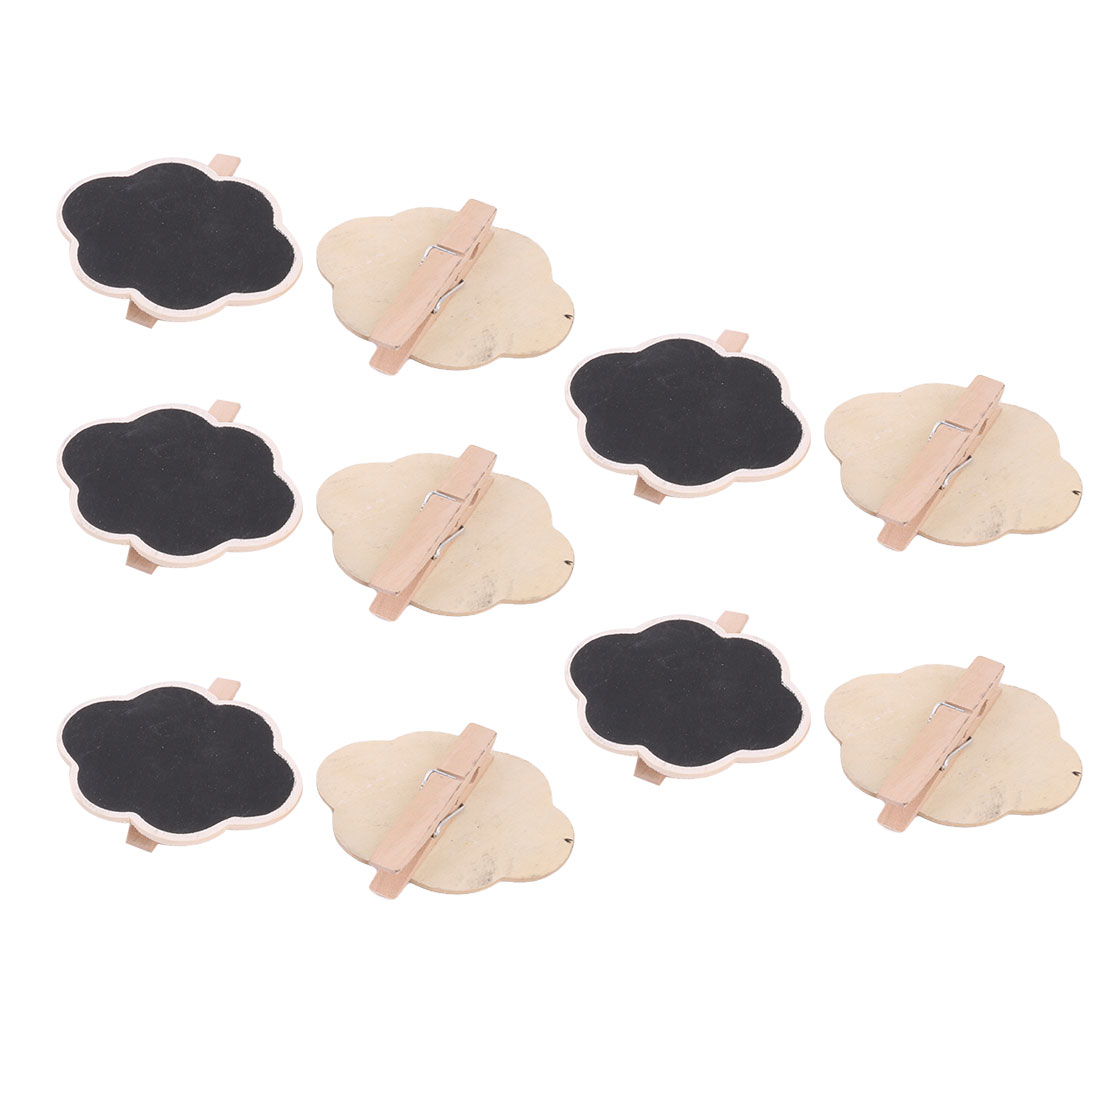 Wedding Party Wood Cloud Shaped Table Number Sign Chalkboard Blackboard 10pcs